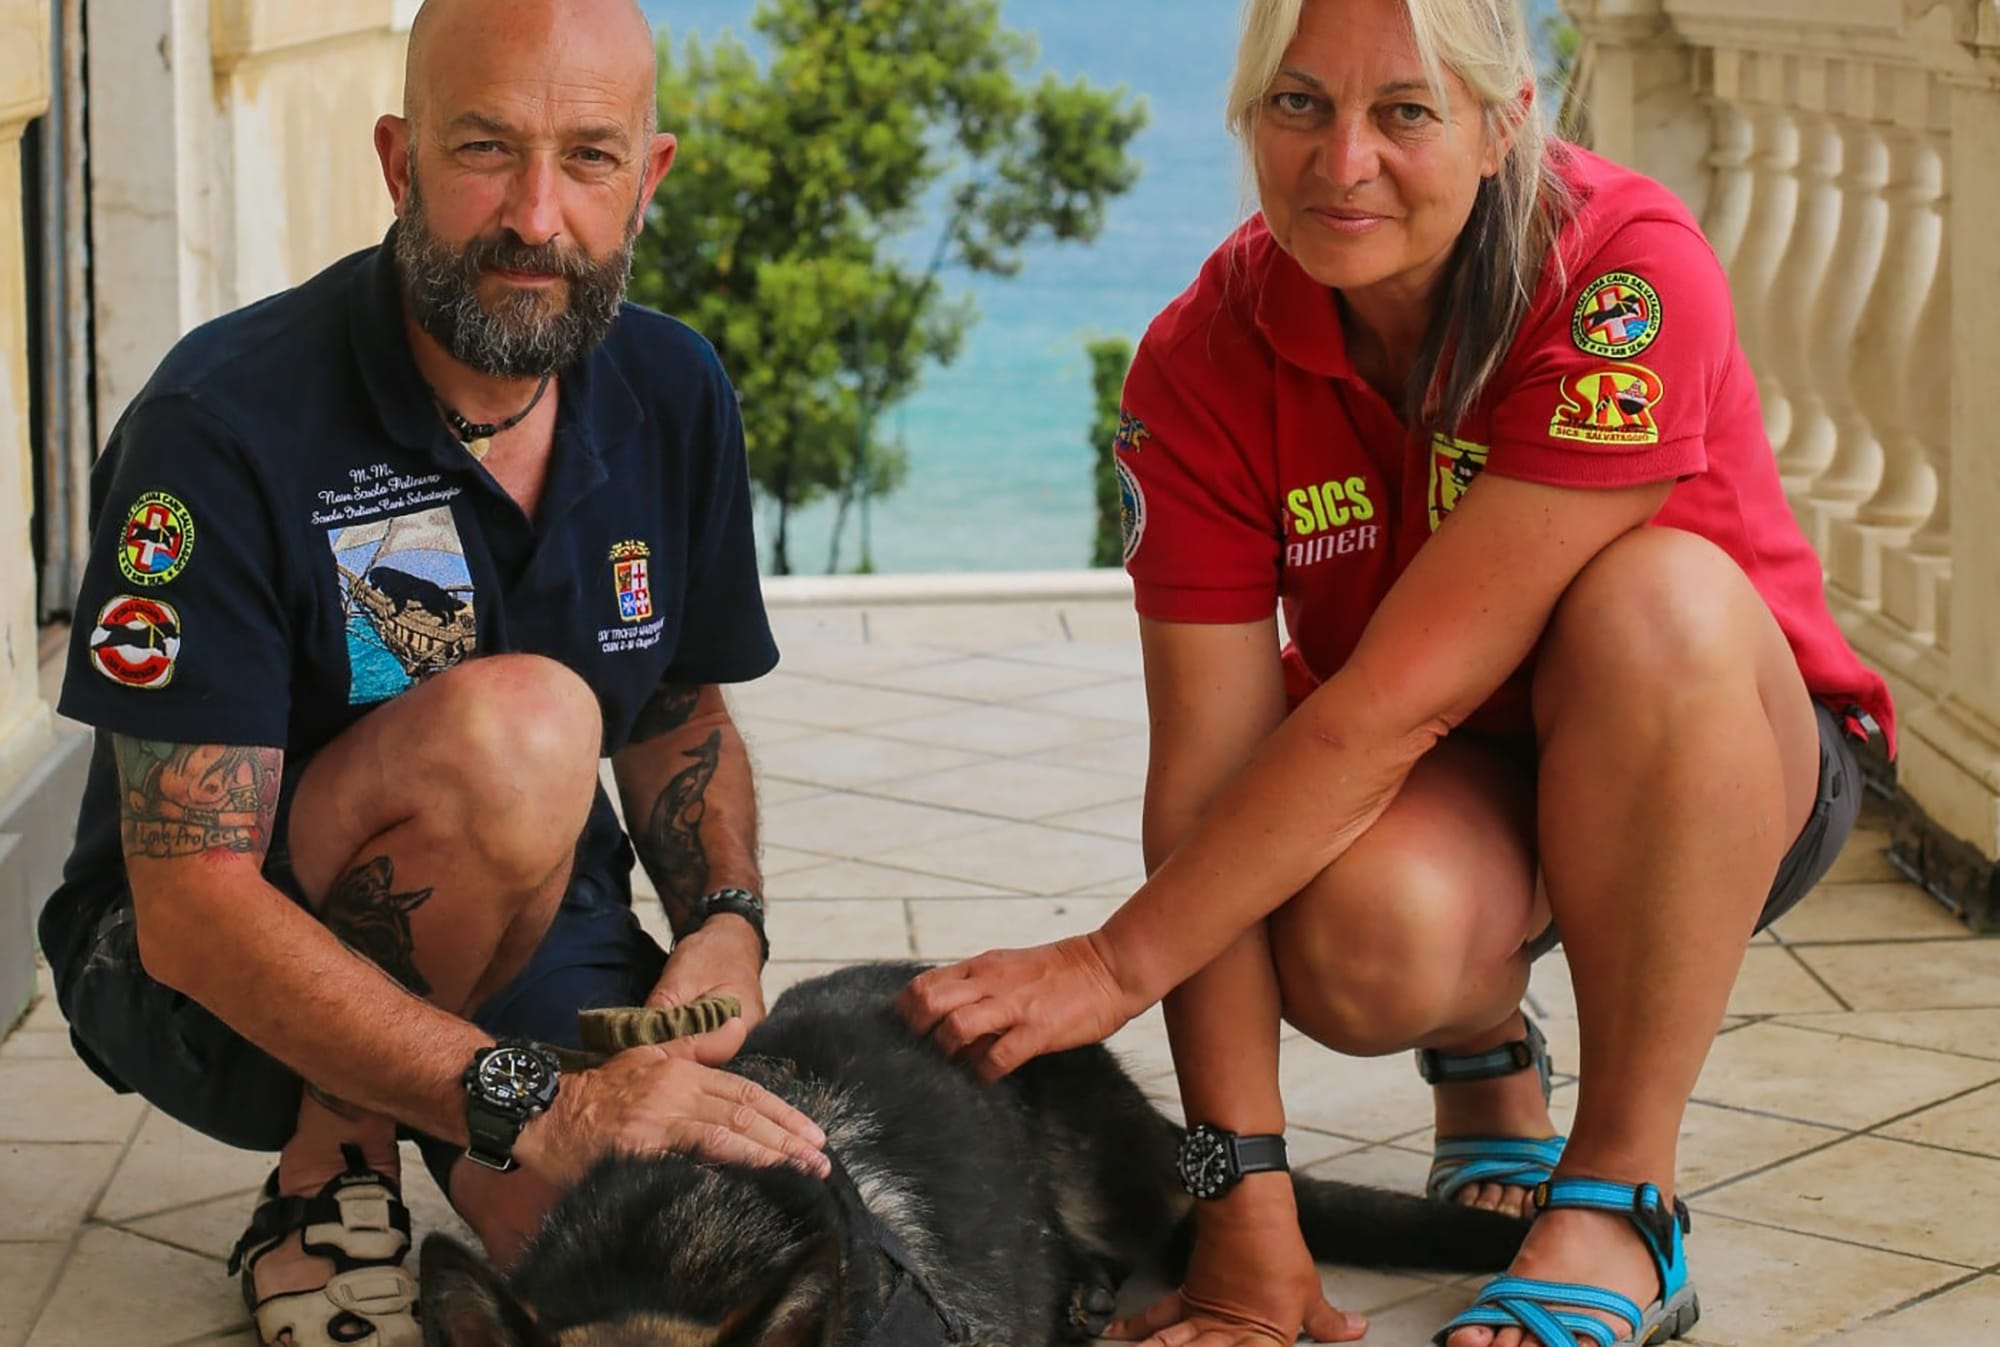 From Searching for Orcas to Protecting Rhinos, the Series 'Dogs with Extraordinary Jobs' Showcases Hero Pups